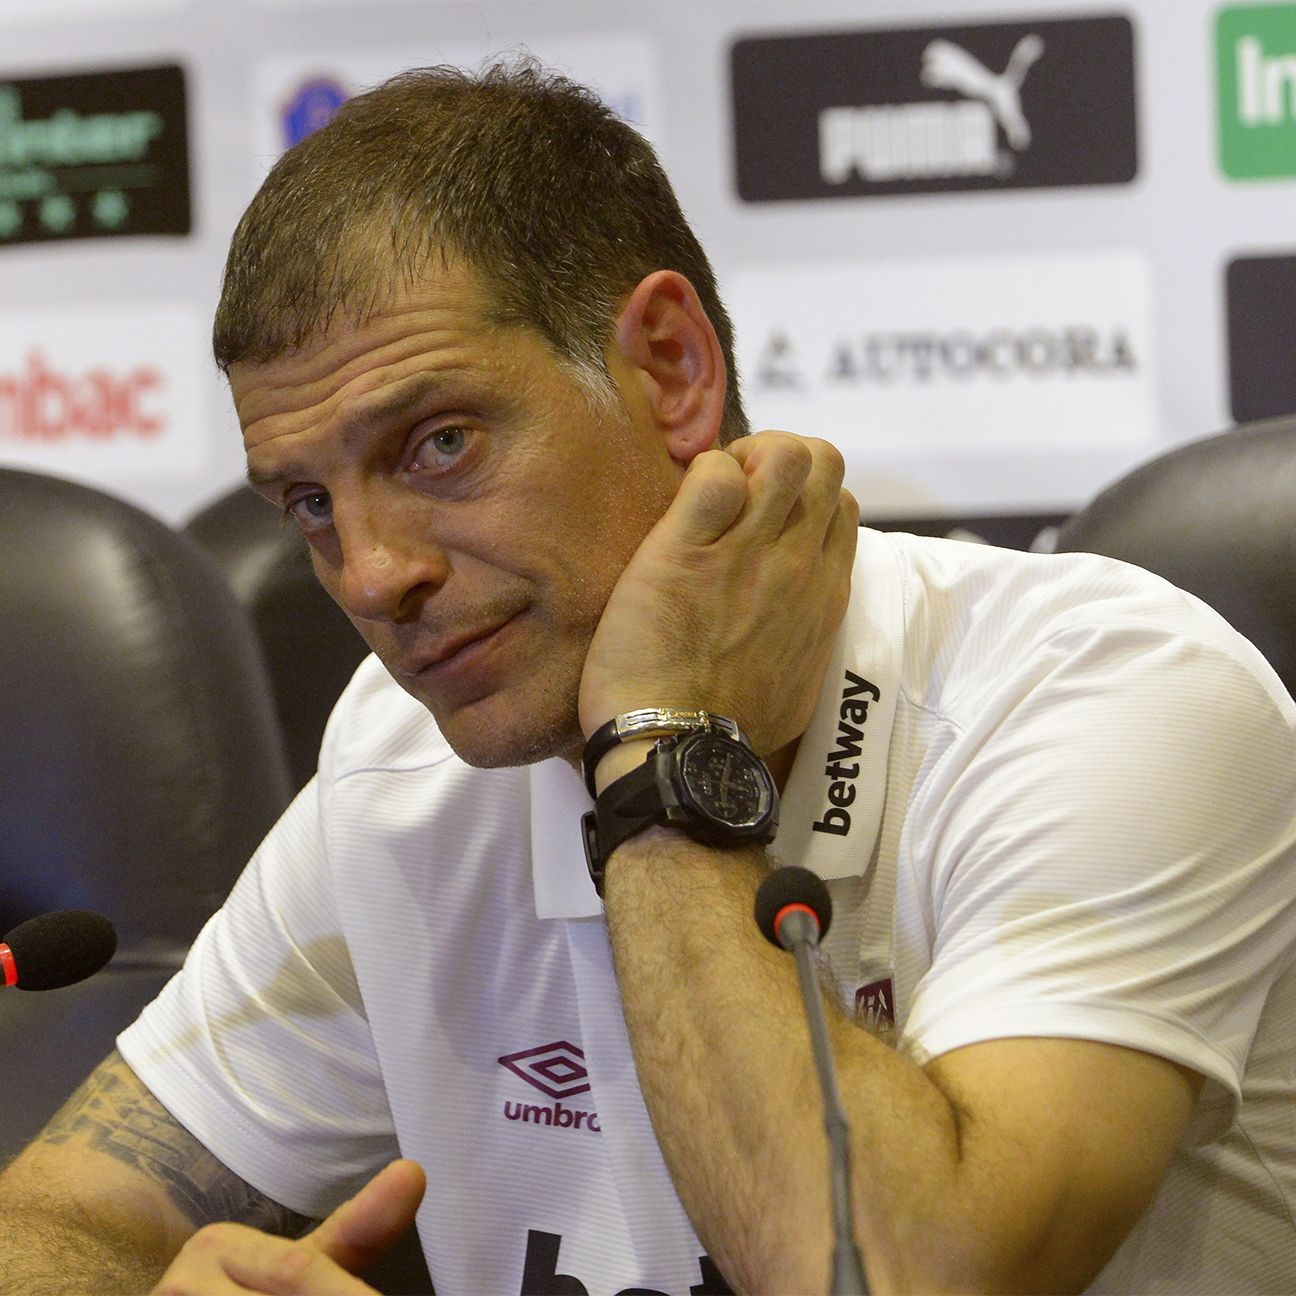 Even with Dimitri Payet returning, West Ham manager Slaven Bilic must still contend with a number of key absences against Man City.